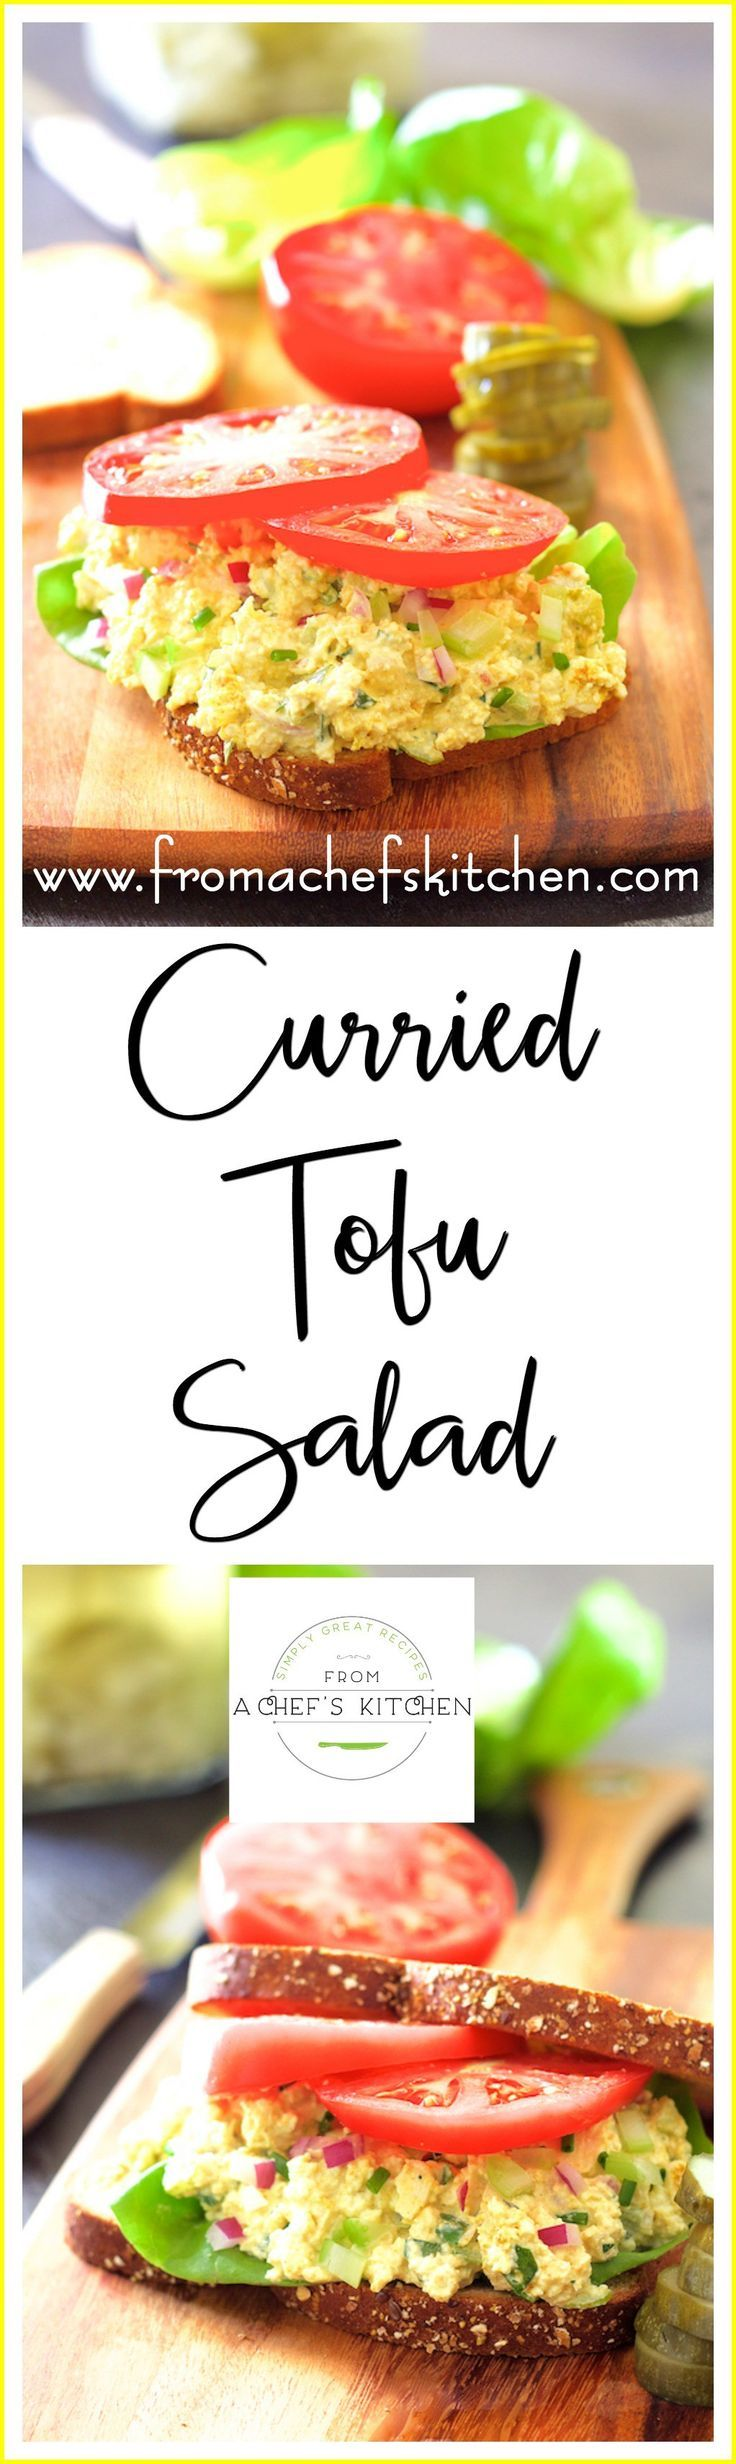 Wondering what to pack for lunch this week? This protein-packed tofu salad is…